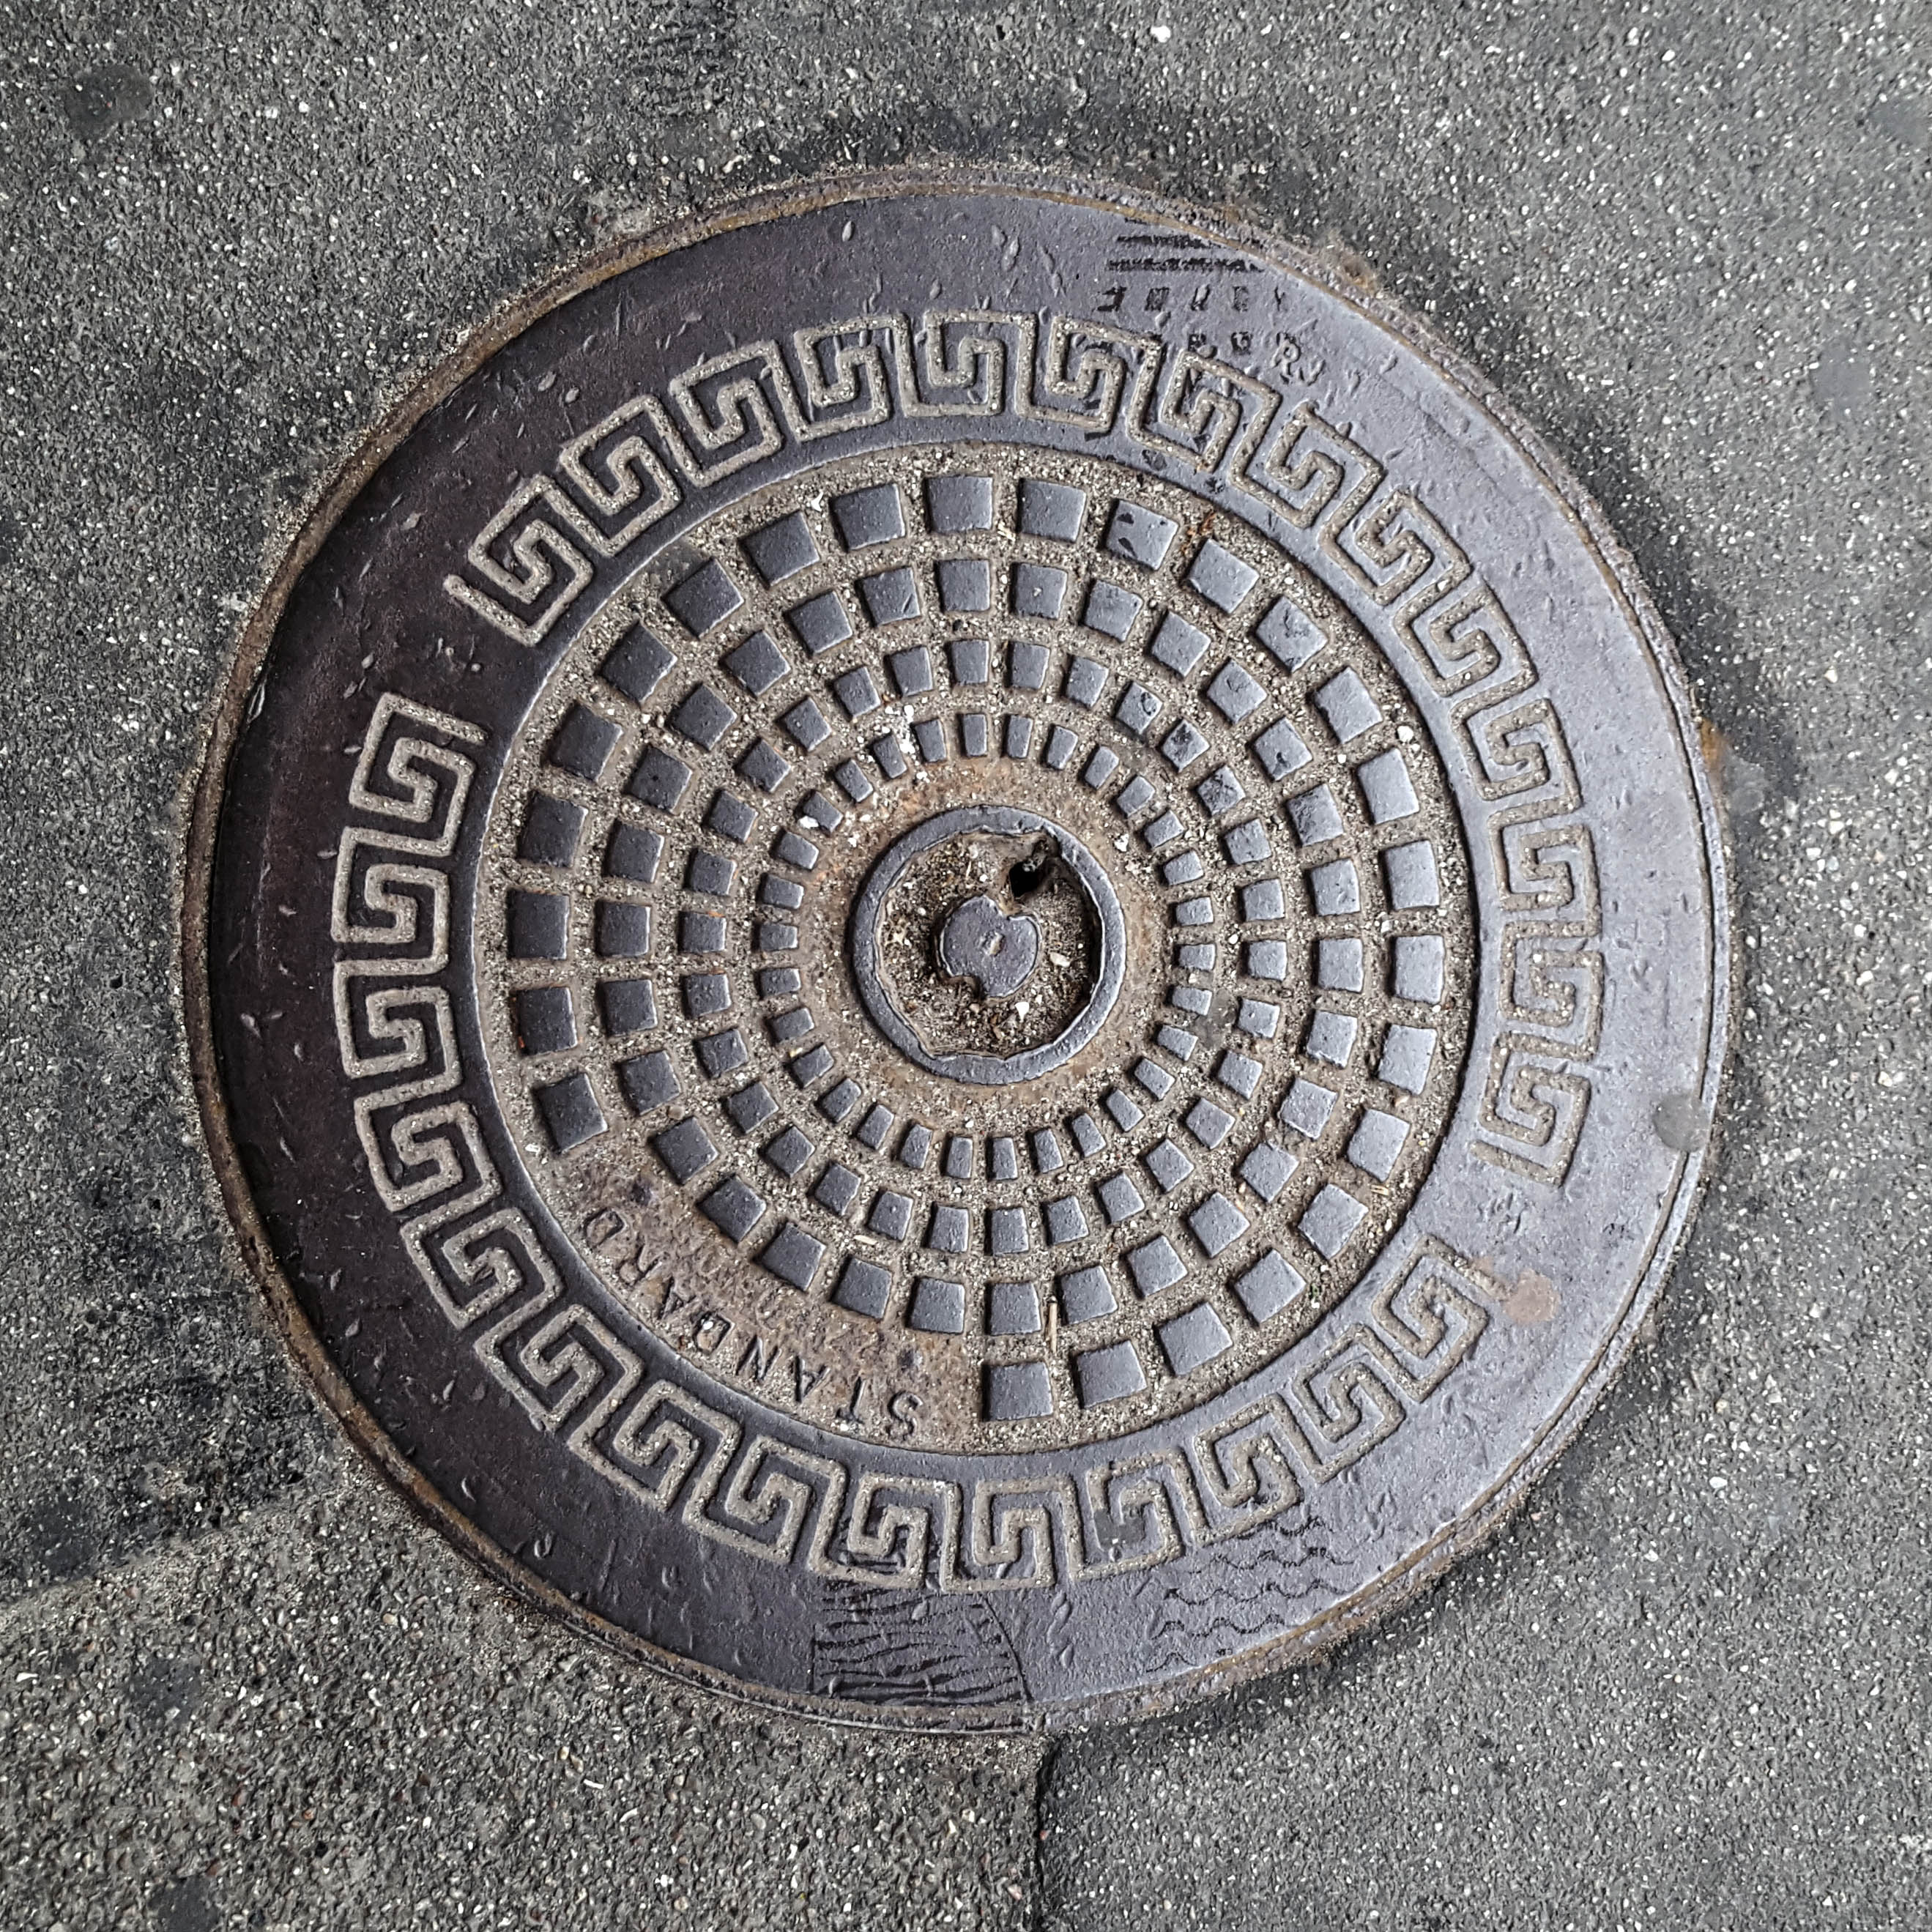 Manhole Cover, Frederiksvark Denmark - Cast iron surround with Greek key decorative border and inner pattern of concentric circles formed from graduated raised squares